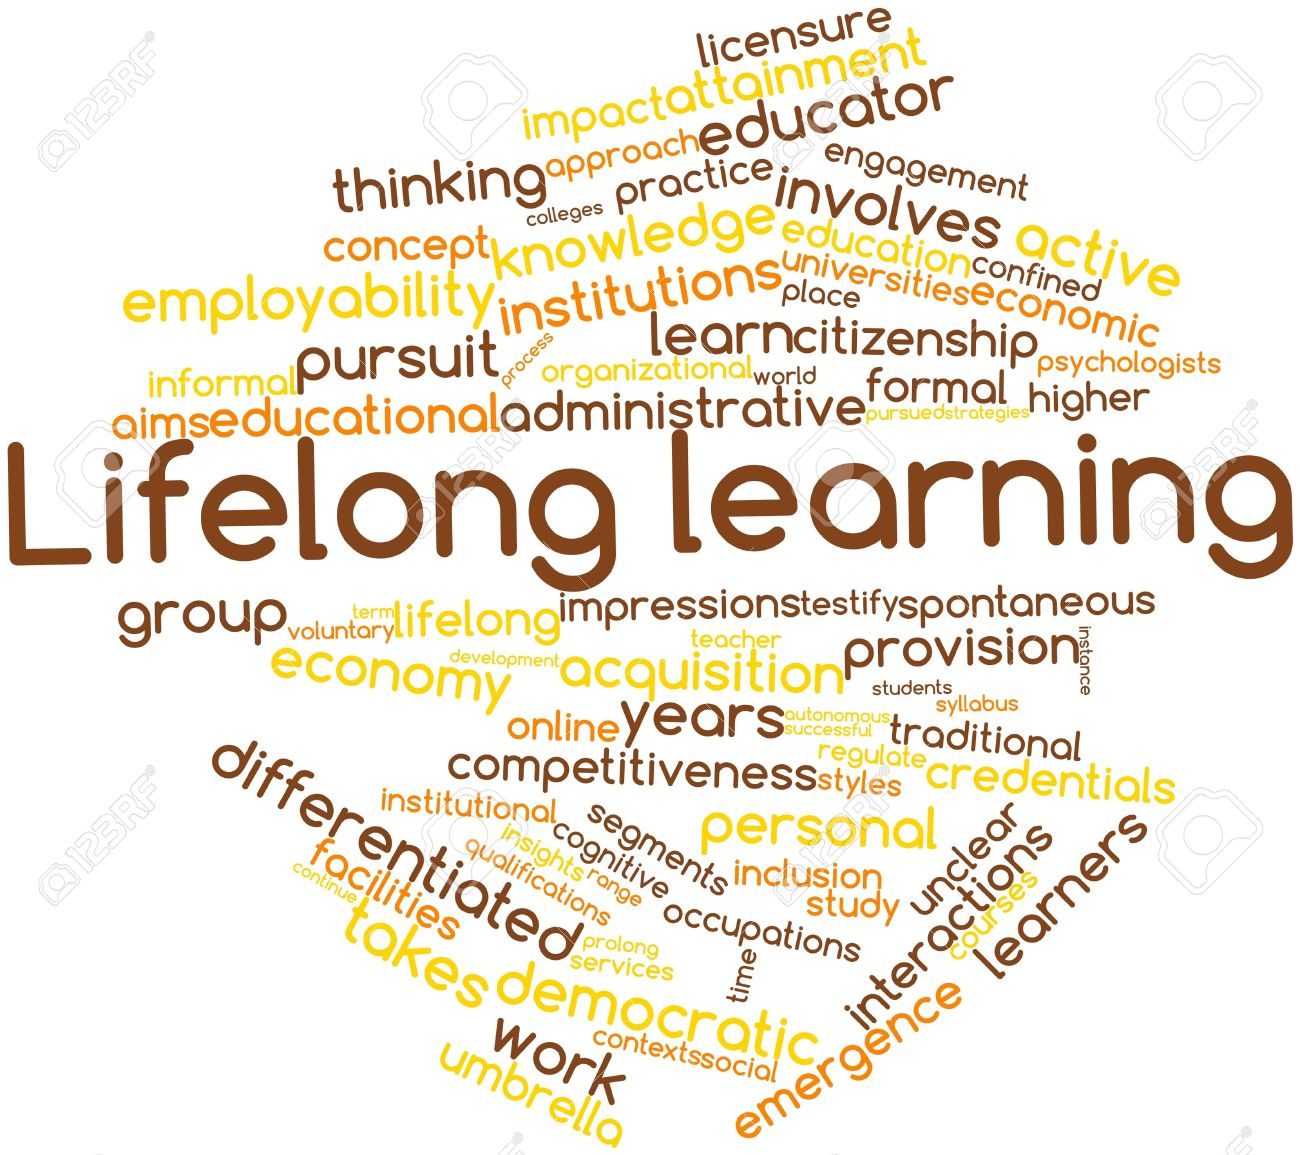 lifelong learner essay